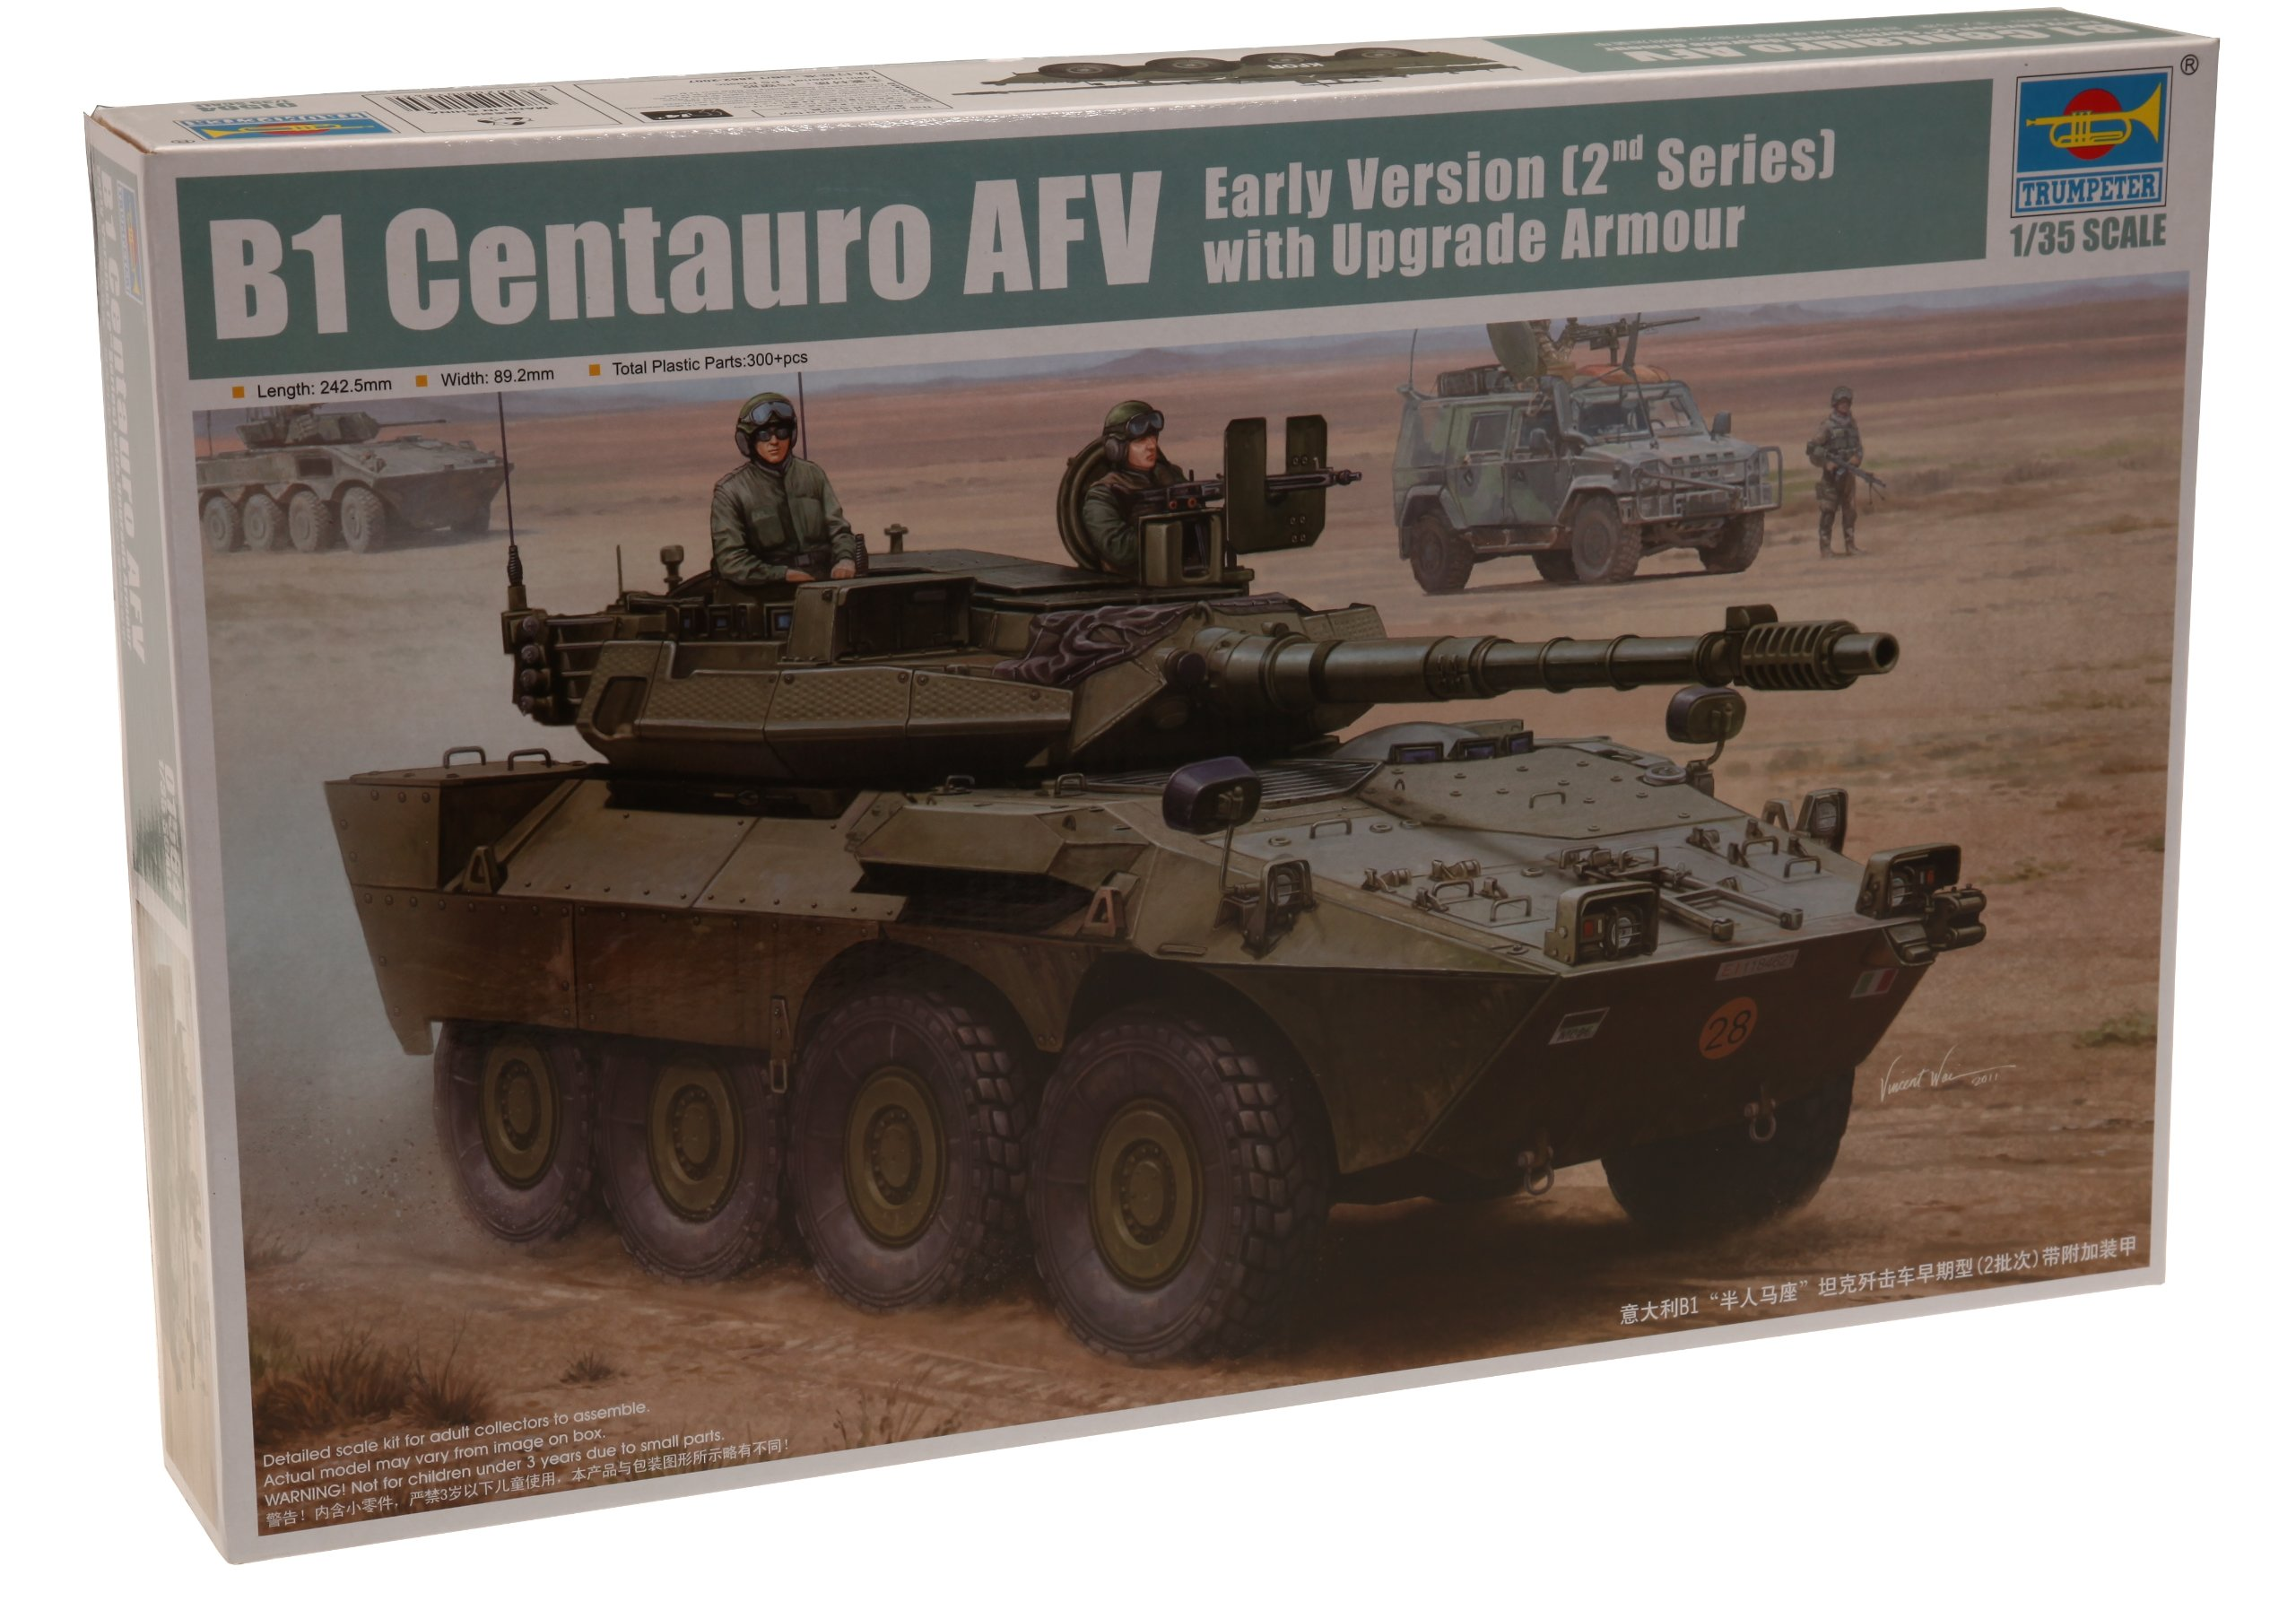 Trumpeter 1/35 Italian B1 Centauro 2nd Series Tank Destroyer Early Version with Upgrade Armor